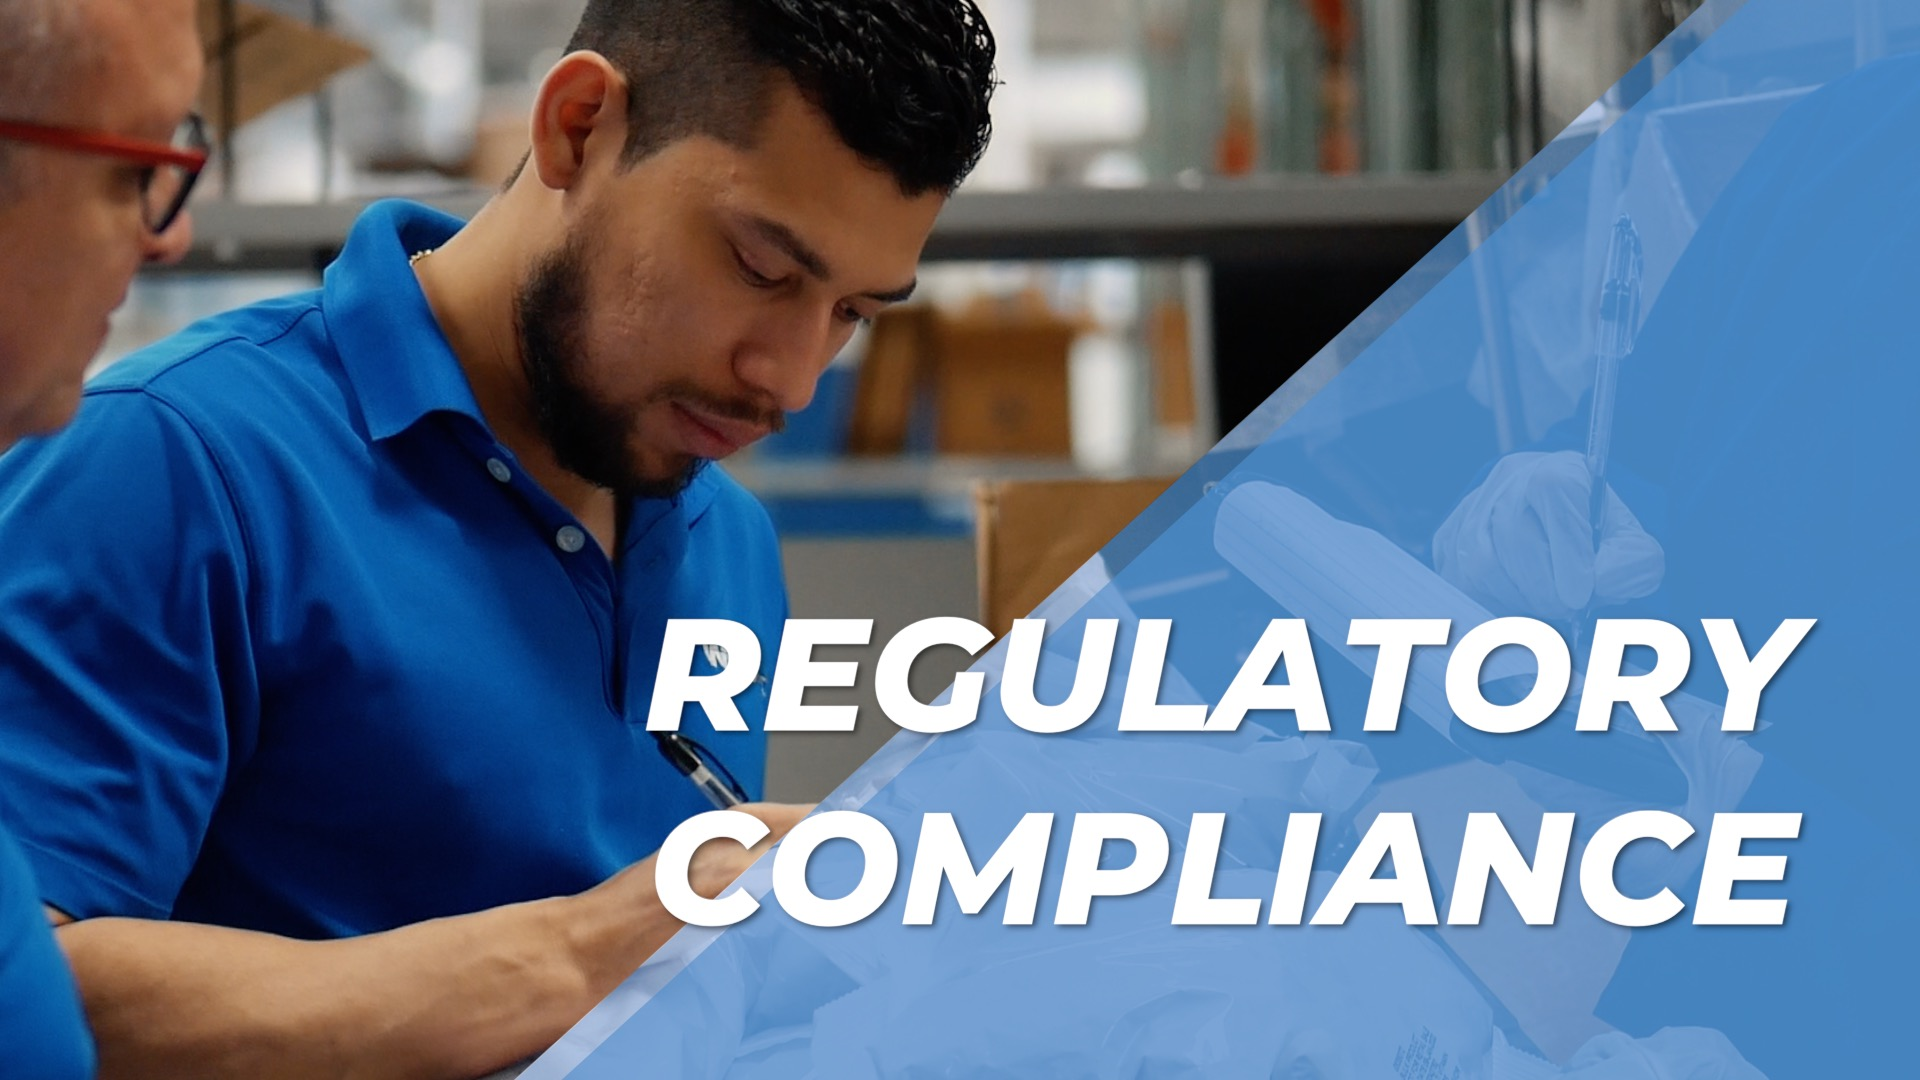 Regulatory Compliance is one of the WDSrx Video Series.